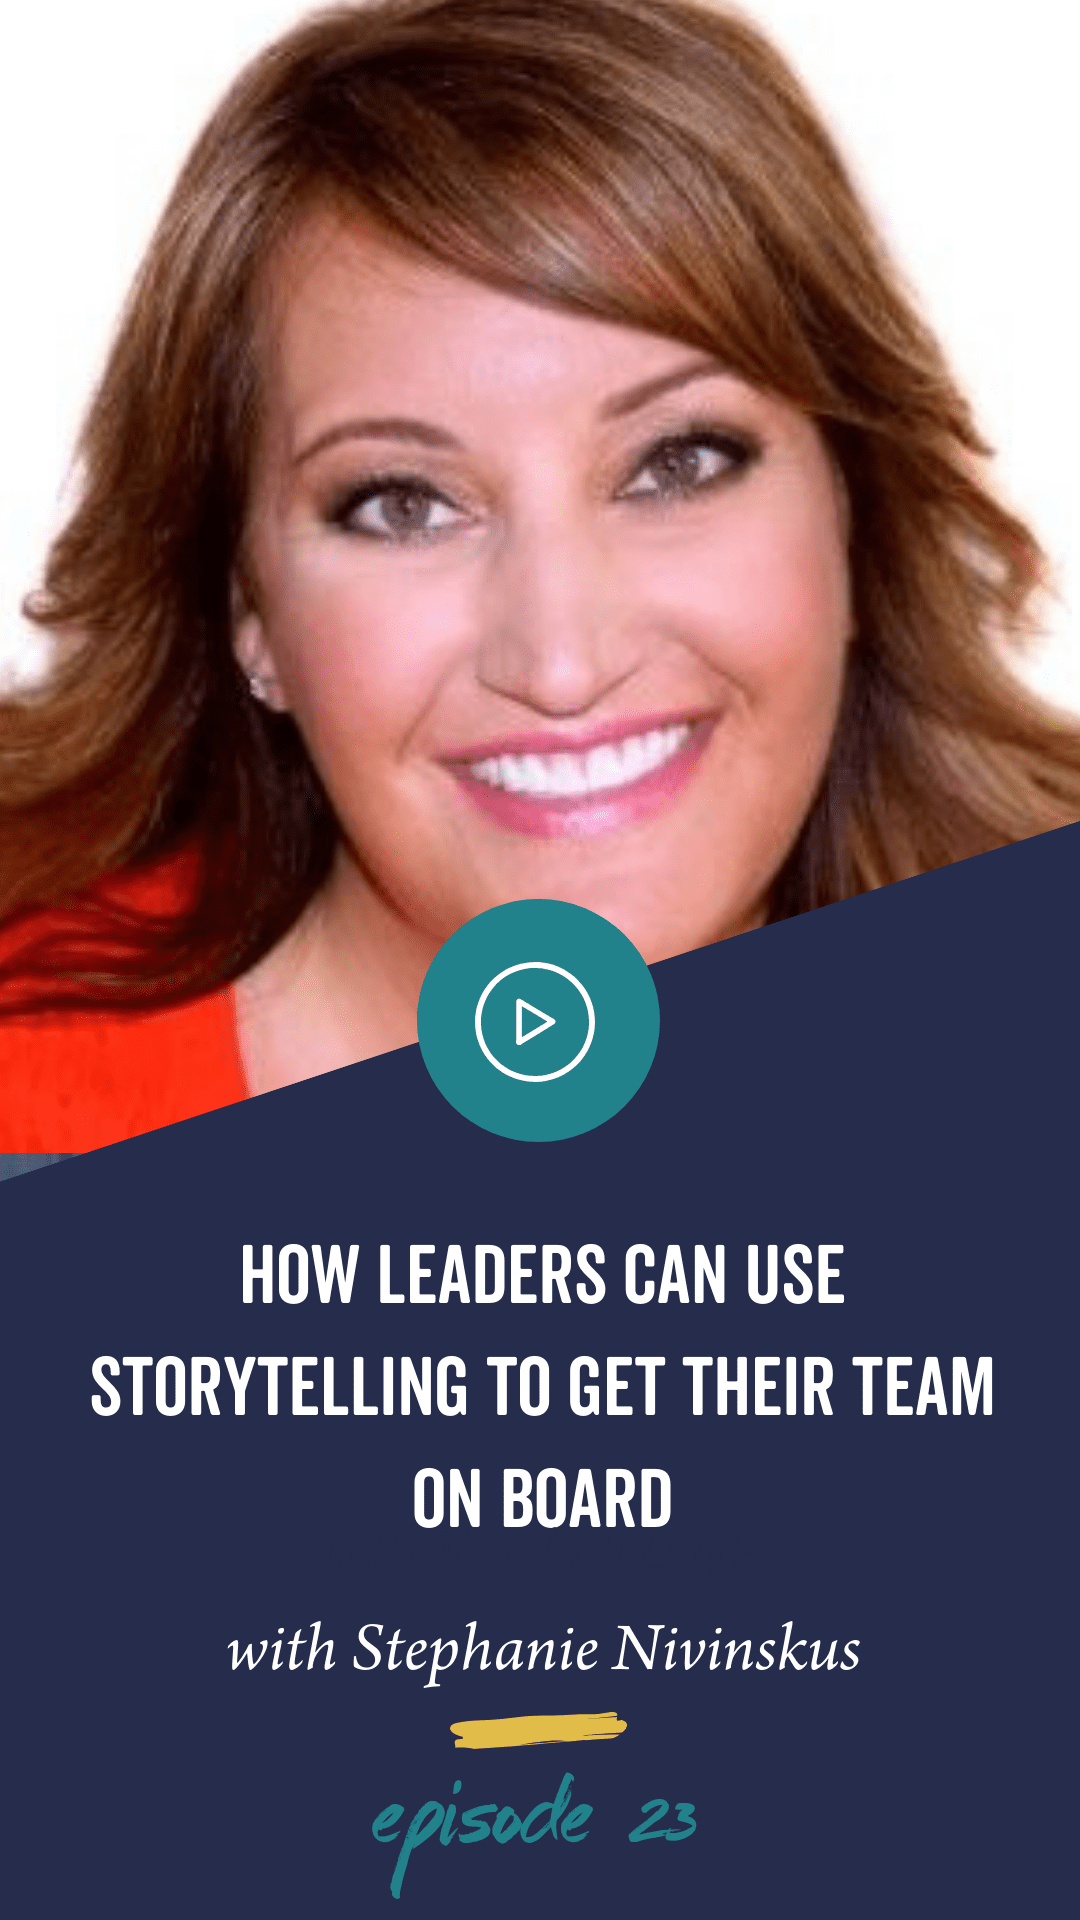 Episode 23: The Power of Storytelling with Stephanie Nivinskus